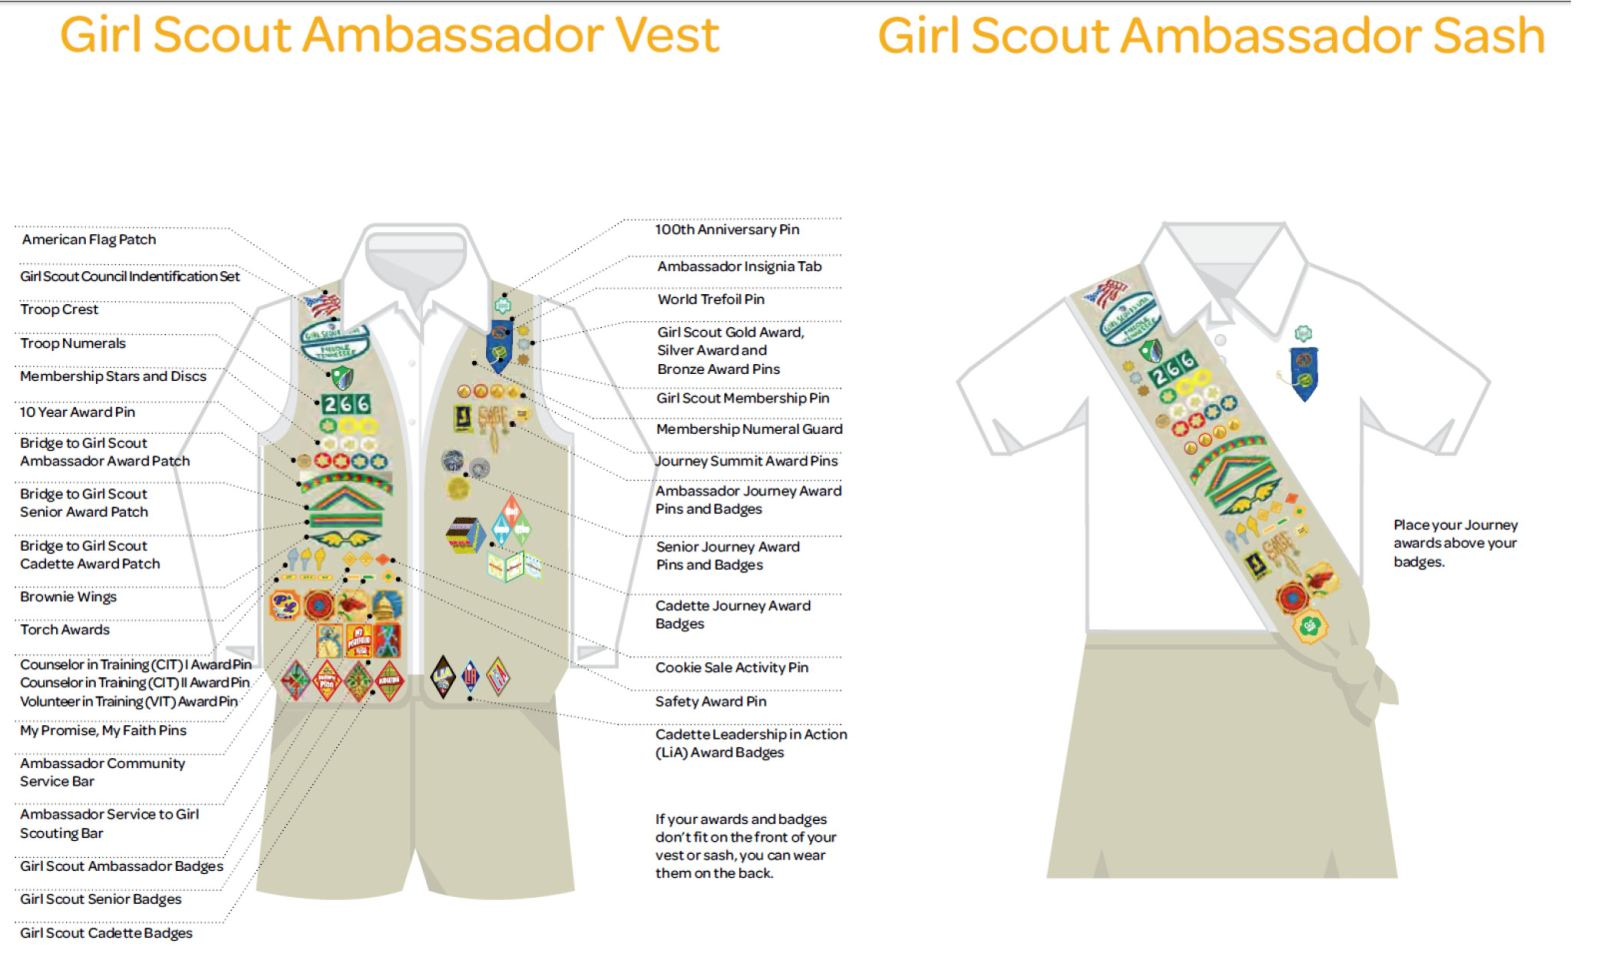 What activities do Mexican Girl Guides do to earn badges?